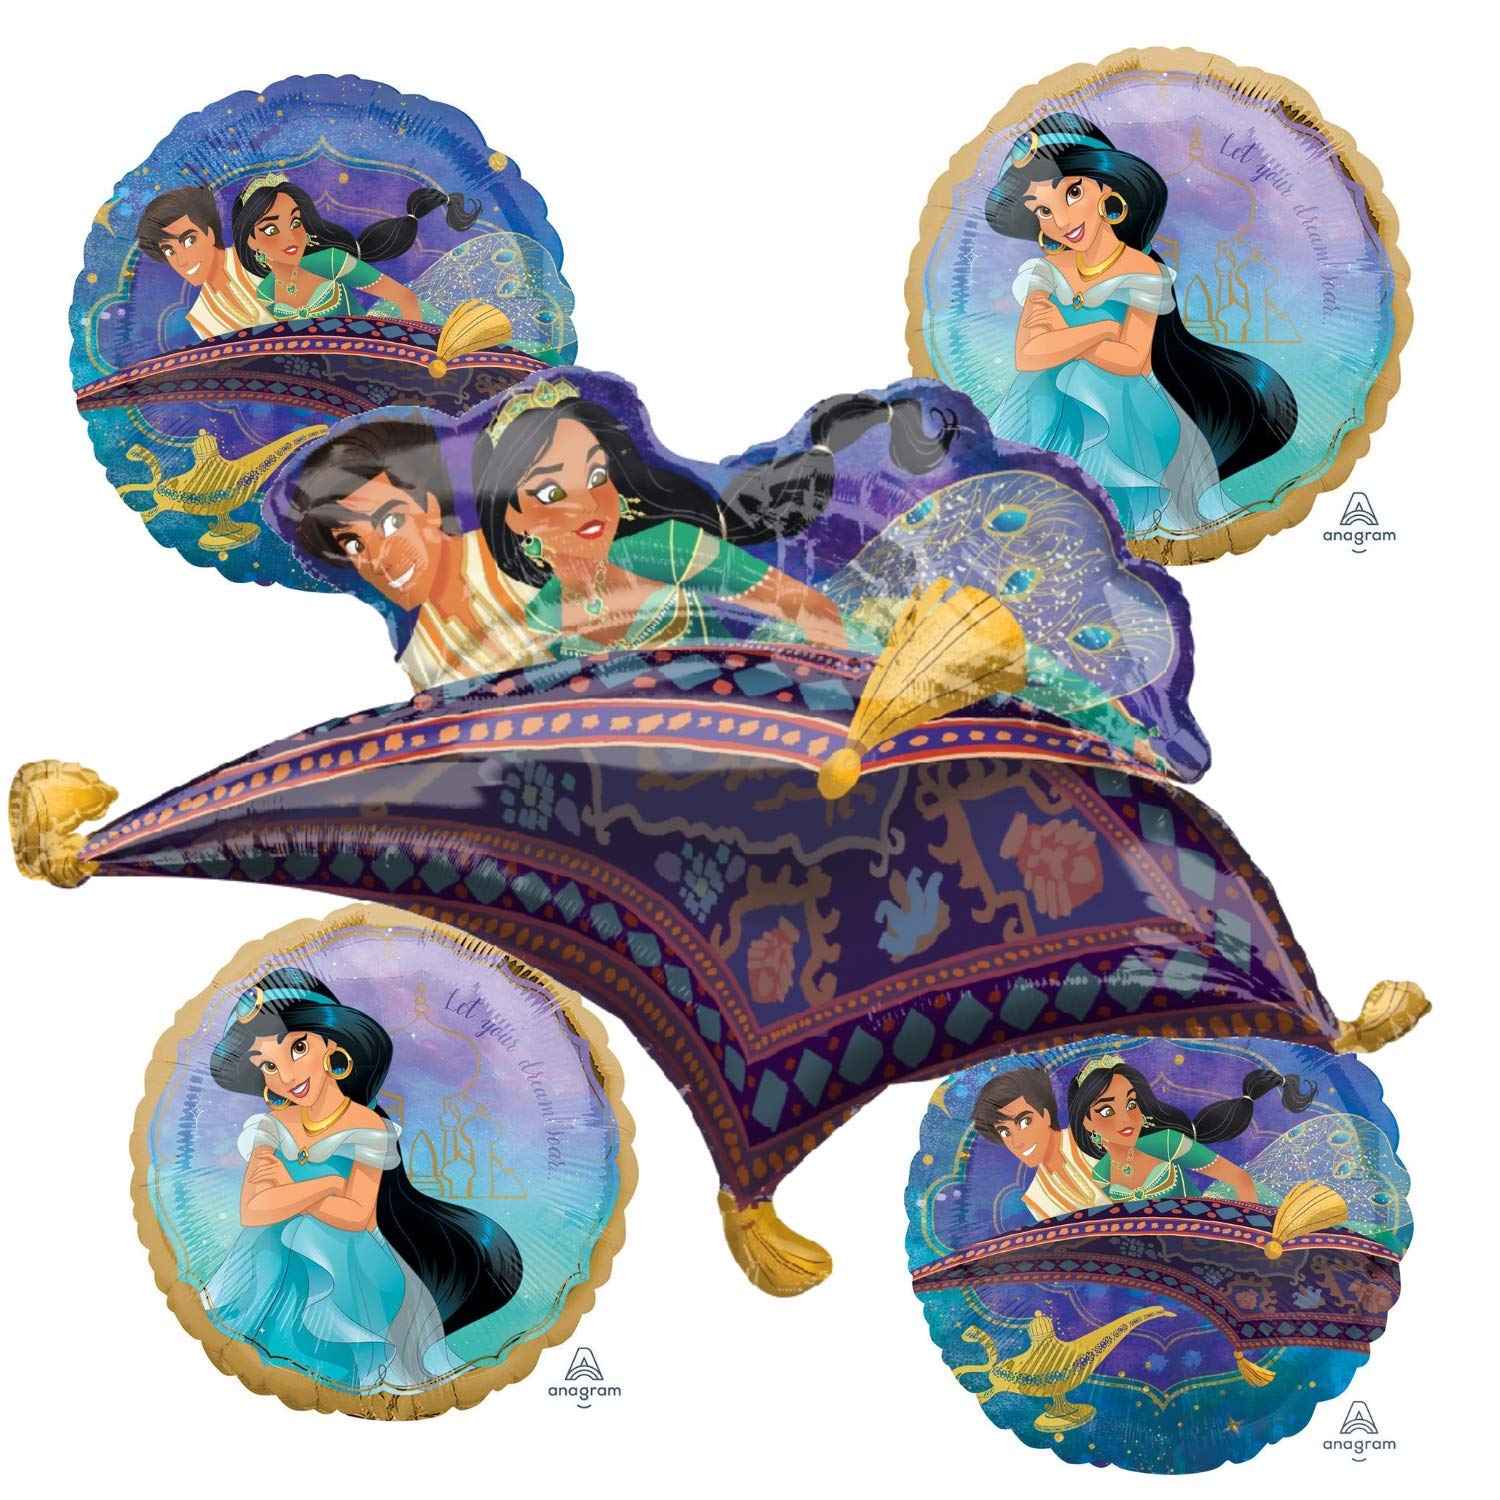 Princess Jasmine Aladdin Balloon Bouquet - Movie Decoration Balloons For A Disney Aladdin Theme Birthday Party. Great Decorations For A Child Or Kids Celebration